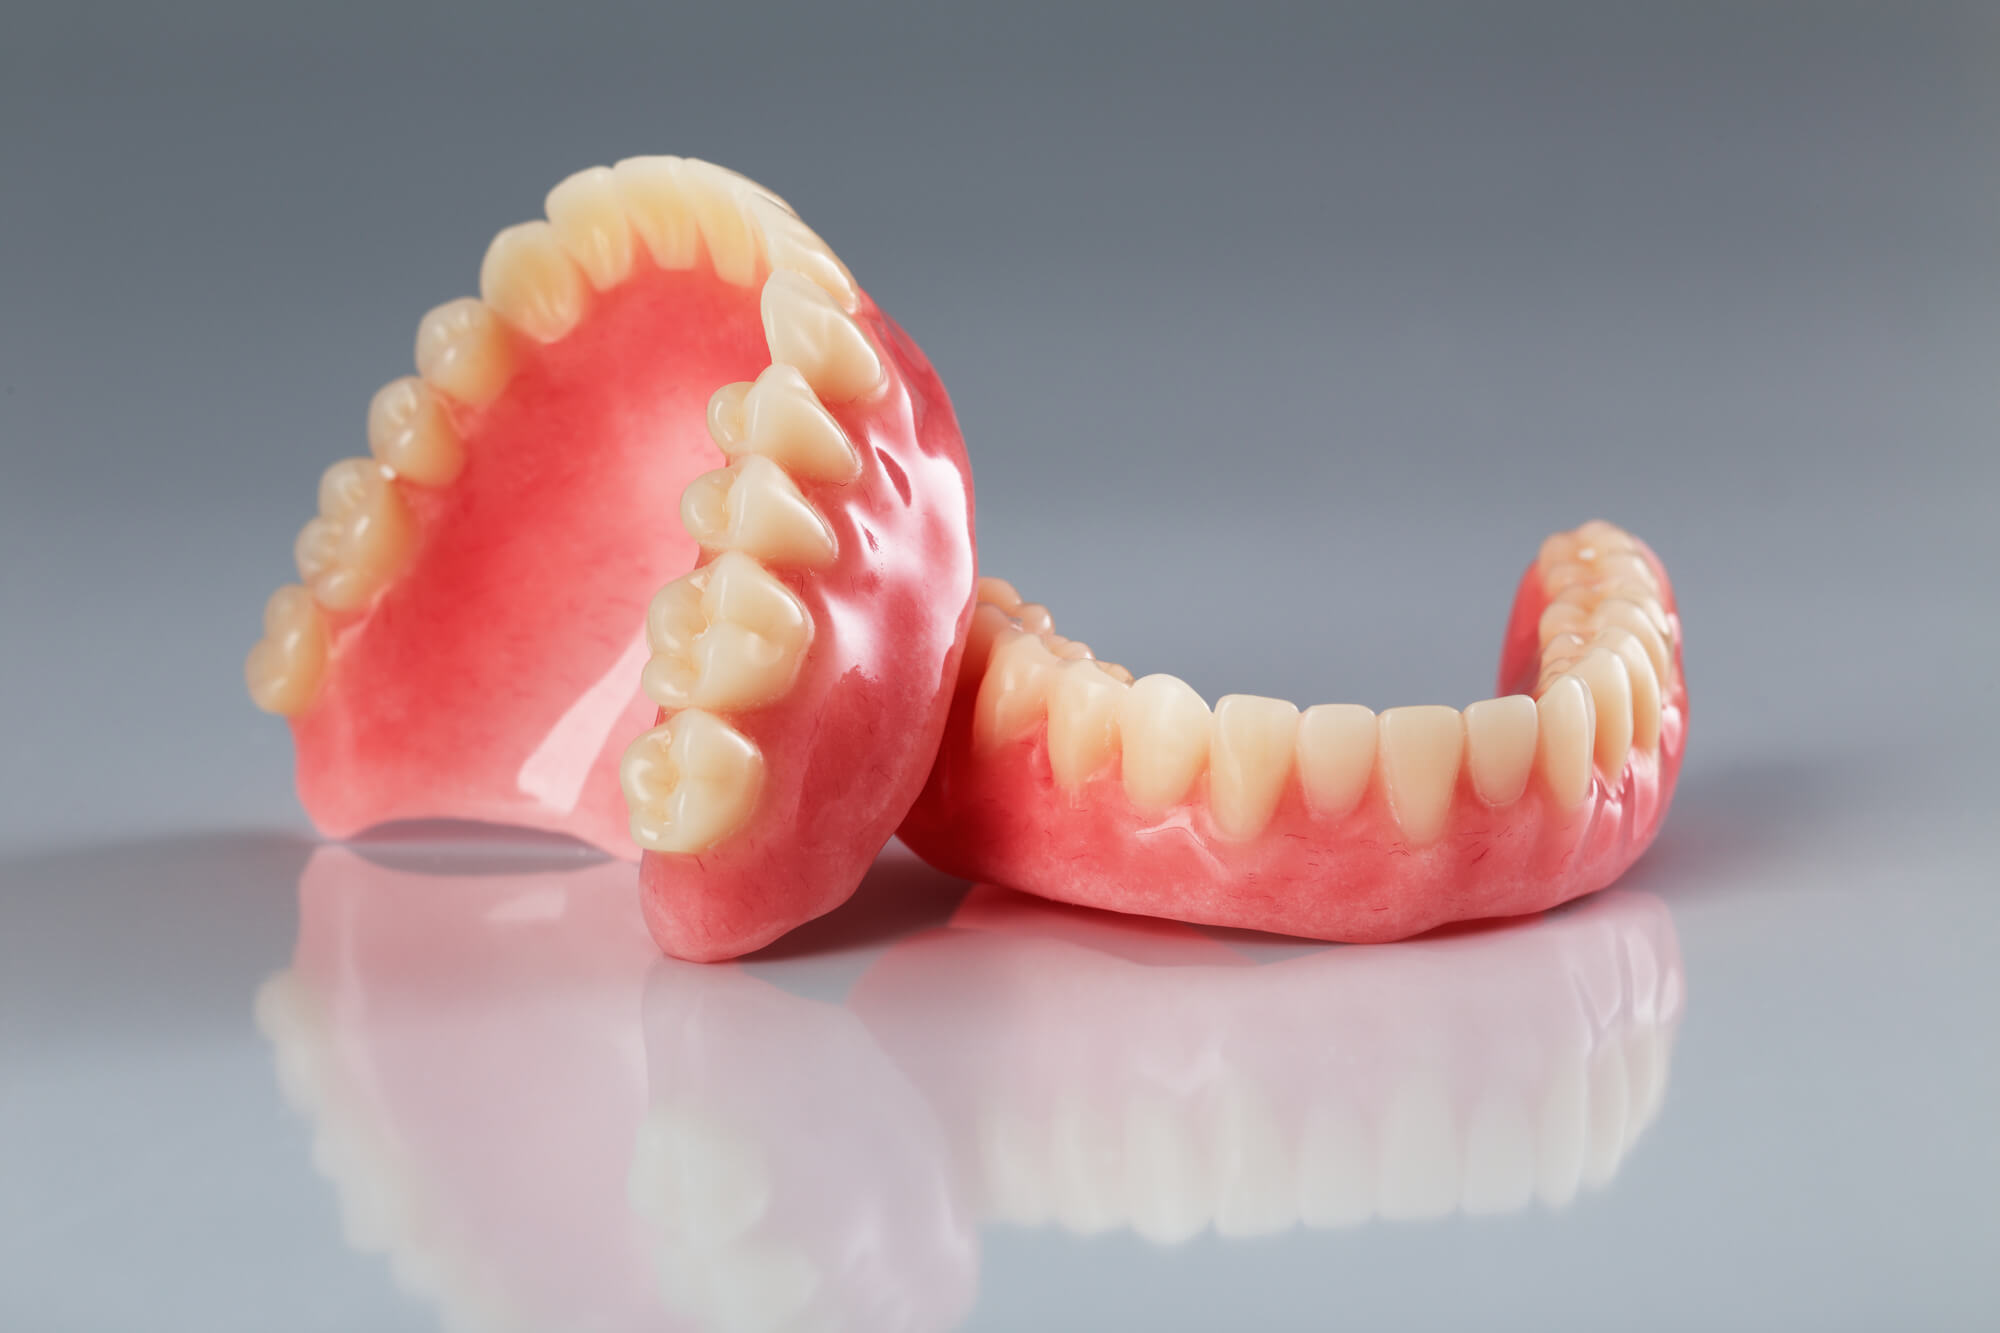 Two Teeth in a Day dentures in Plantation